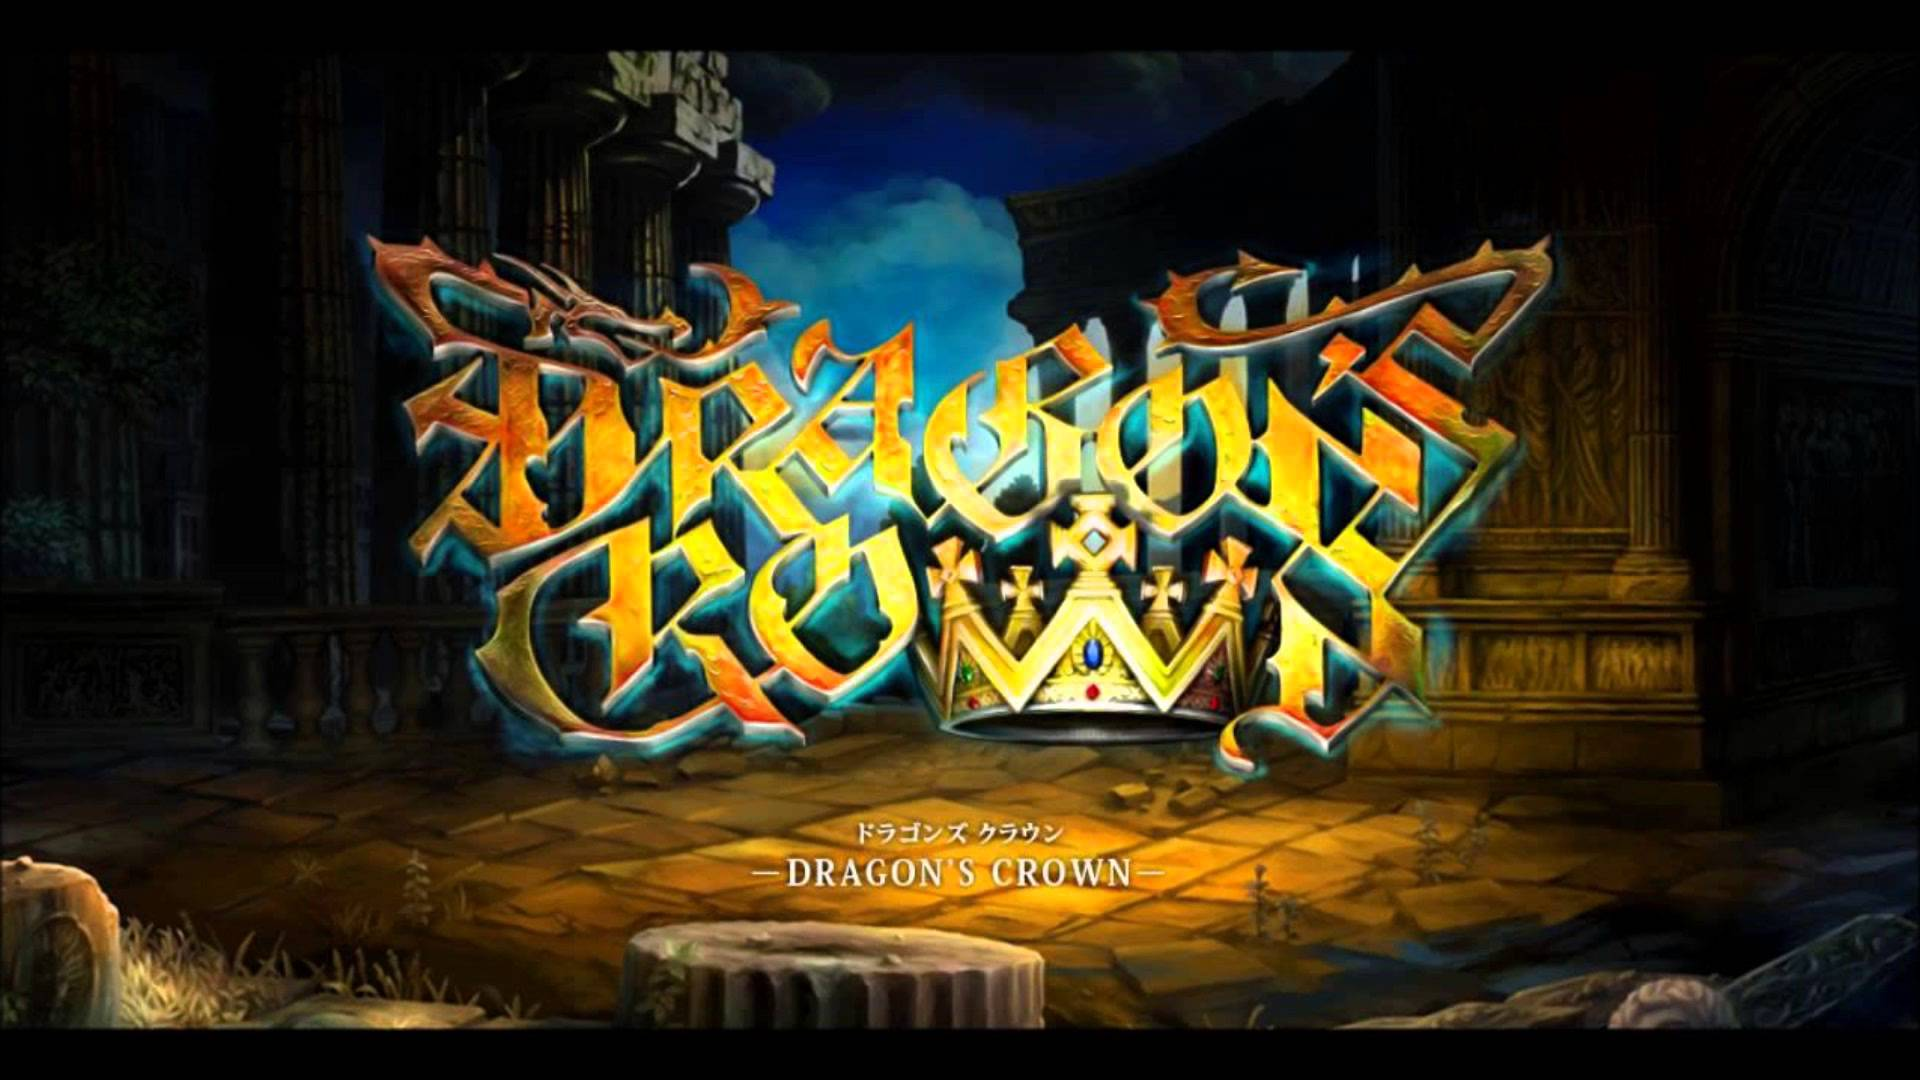 Dragon S Crown Pro Announced For Playstation 4 4k Support Confirmed For Ps4 Pro And More